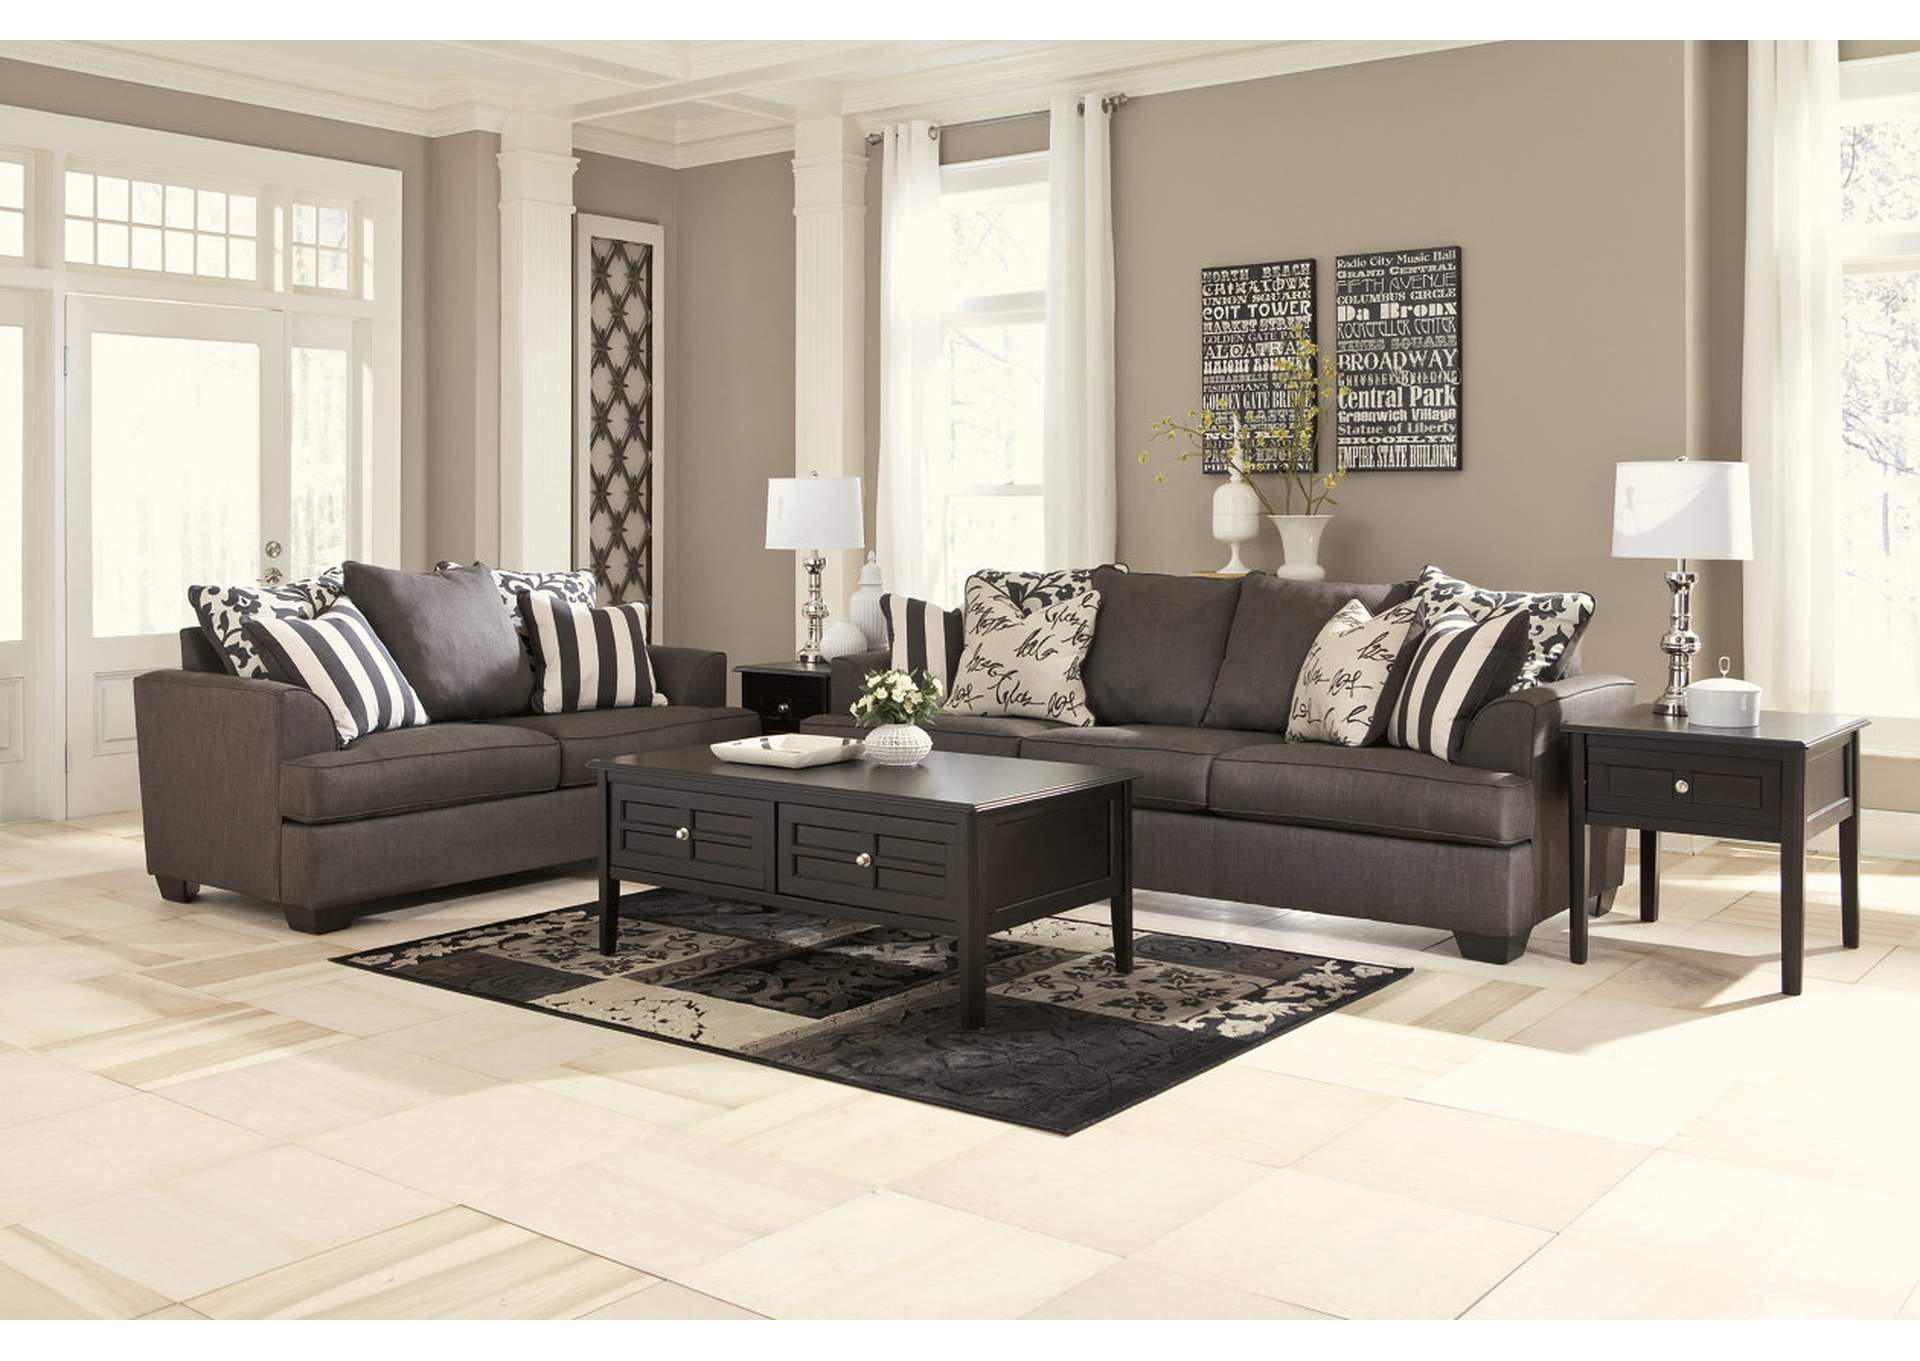 Jennifer Convertibles Sofas Sofa Beds Bedrooms Dining Rooms Amp More Levon Charcoal